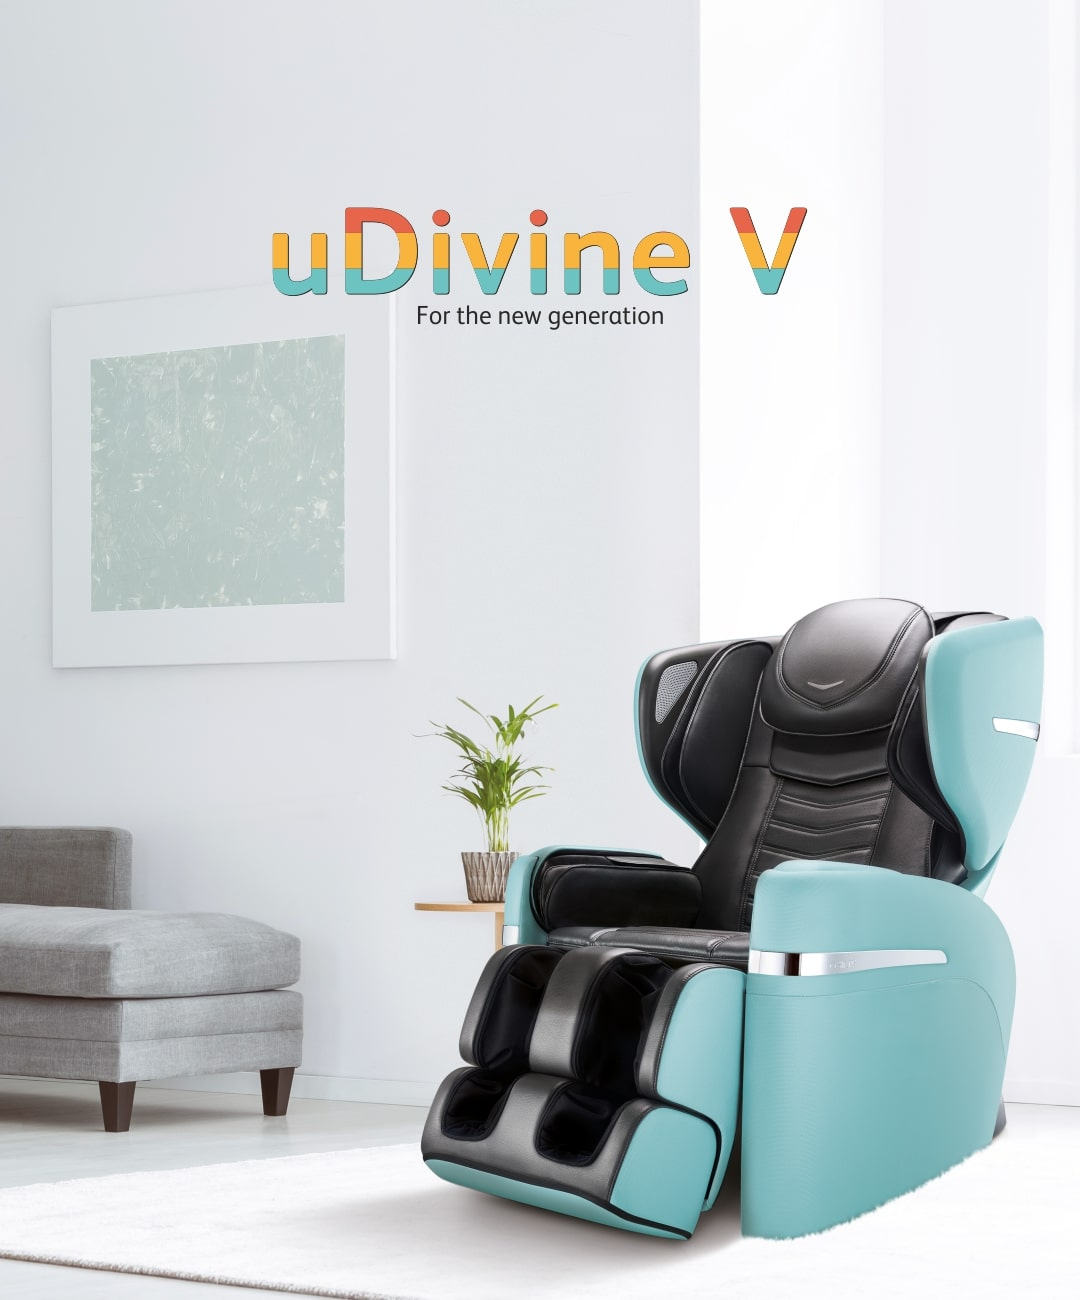 Udivine V Hp Slide Mobile Min